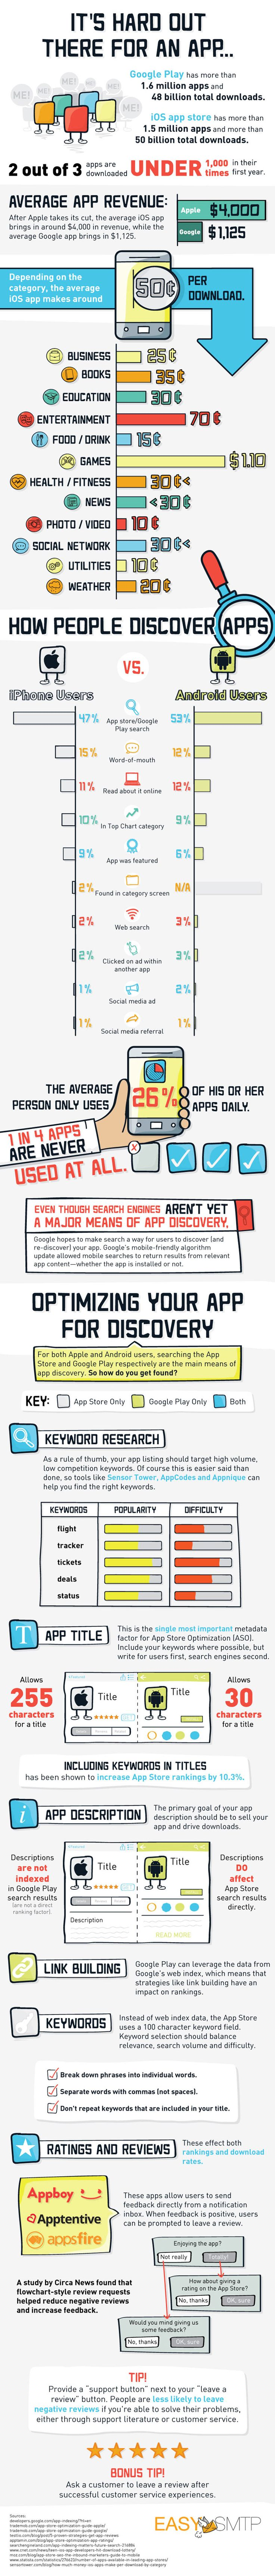 App Store Optimization Guide Infographic. Topic: Android apps, Google play store, app optimization marketing.